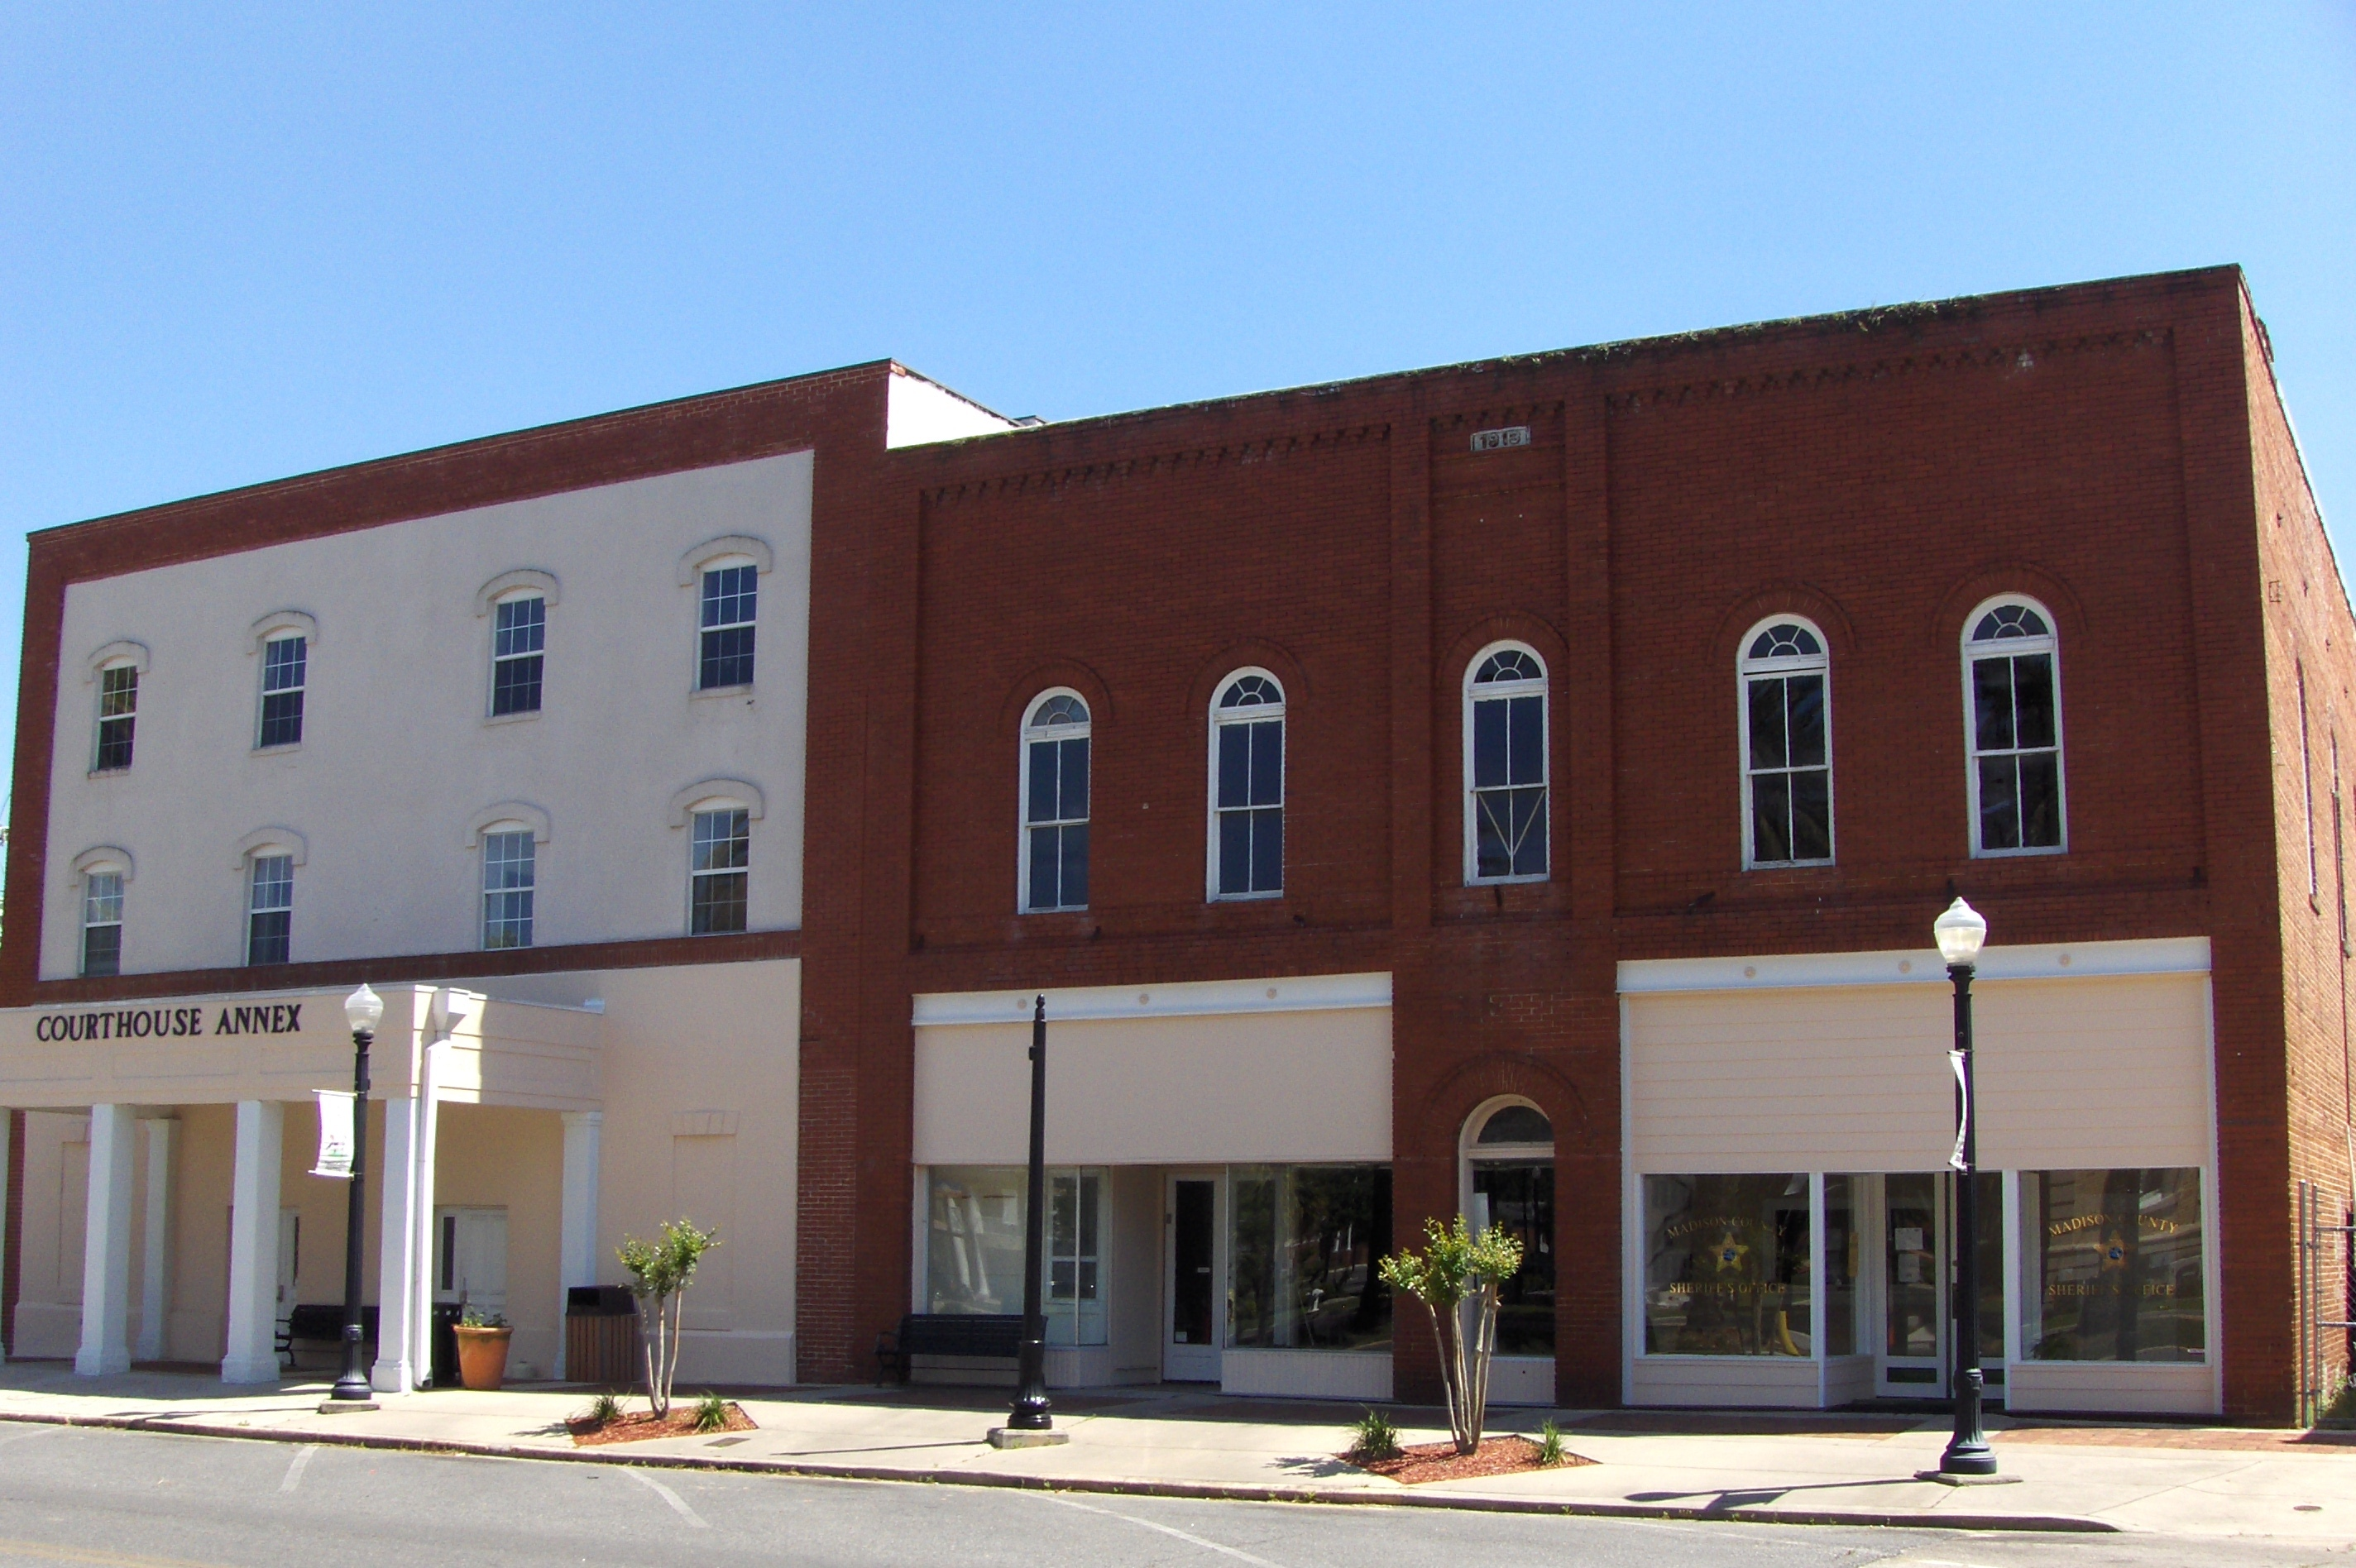 2848x1896 Madison County, FL Courthouse Annex, in Courthouse Annex, Madison, FL, by George Lansing Taylor Jr., 22 June 2016